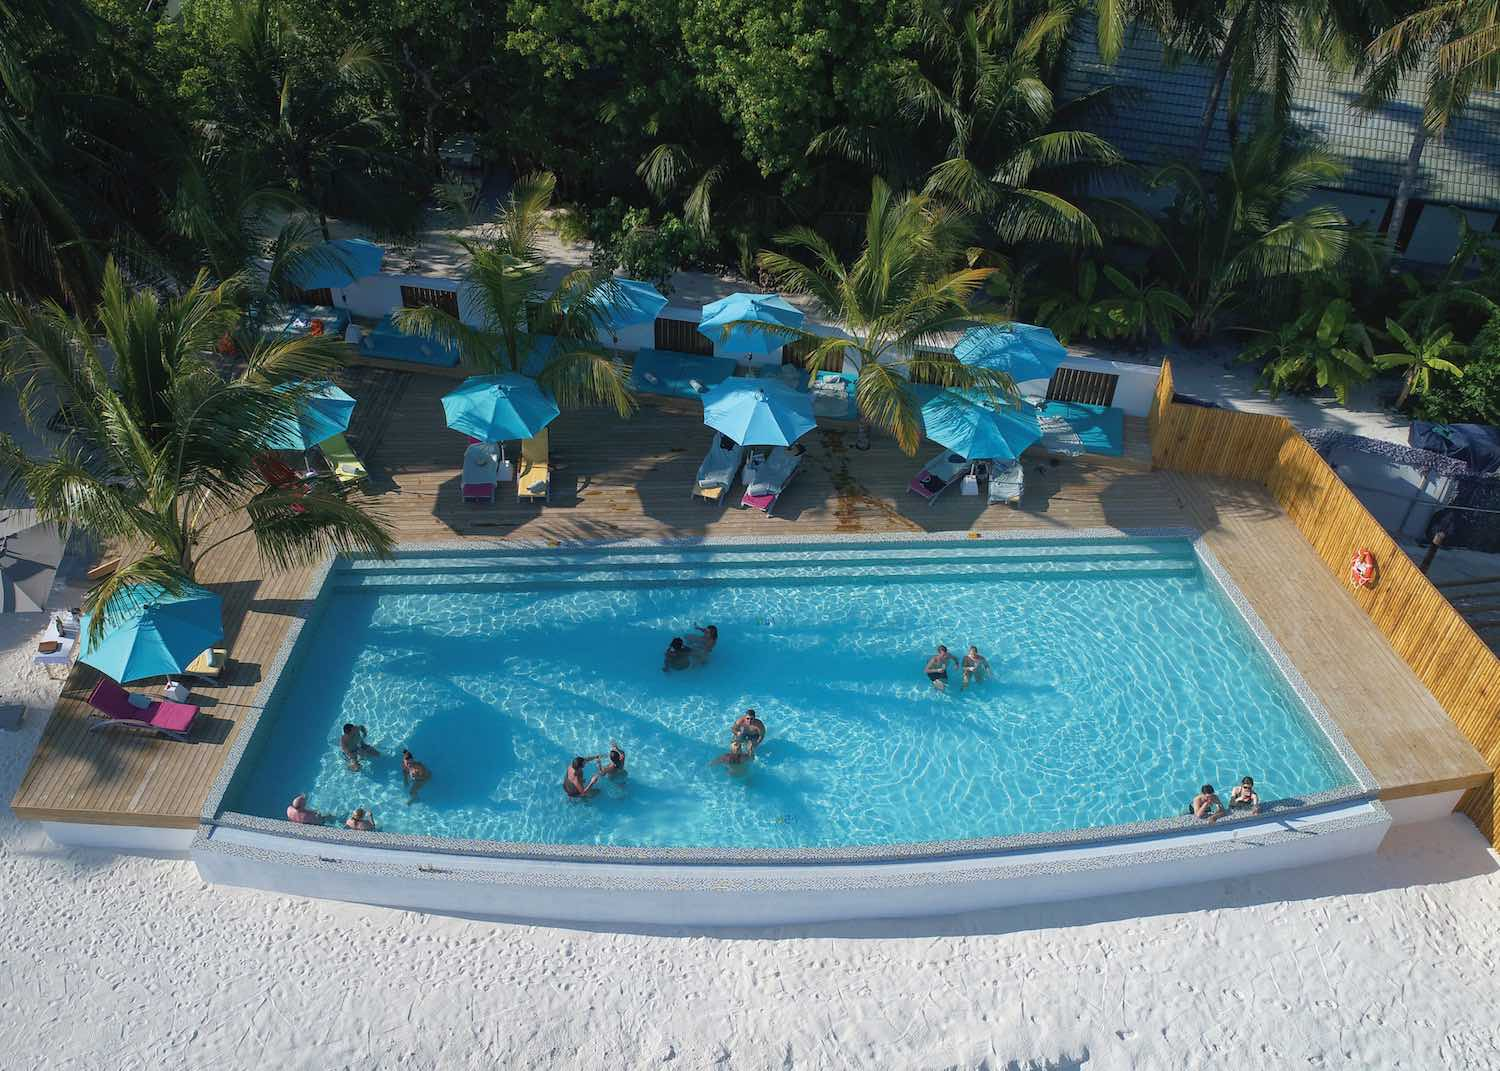 maldives-oblu-by-atmosphere-at-helengeli-adult-only-pool-11-holiday-honeymoon-vacation-invite-to-paradise.jpg